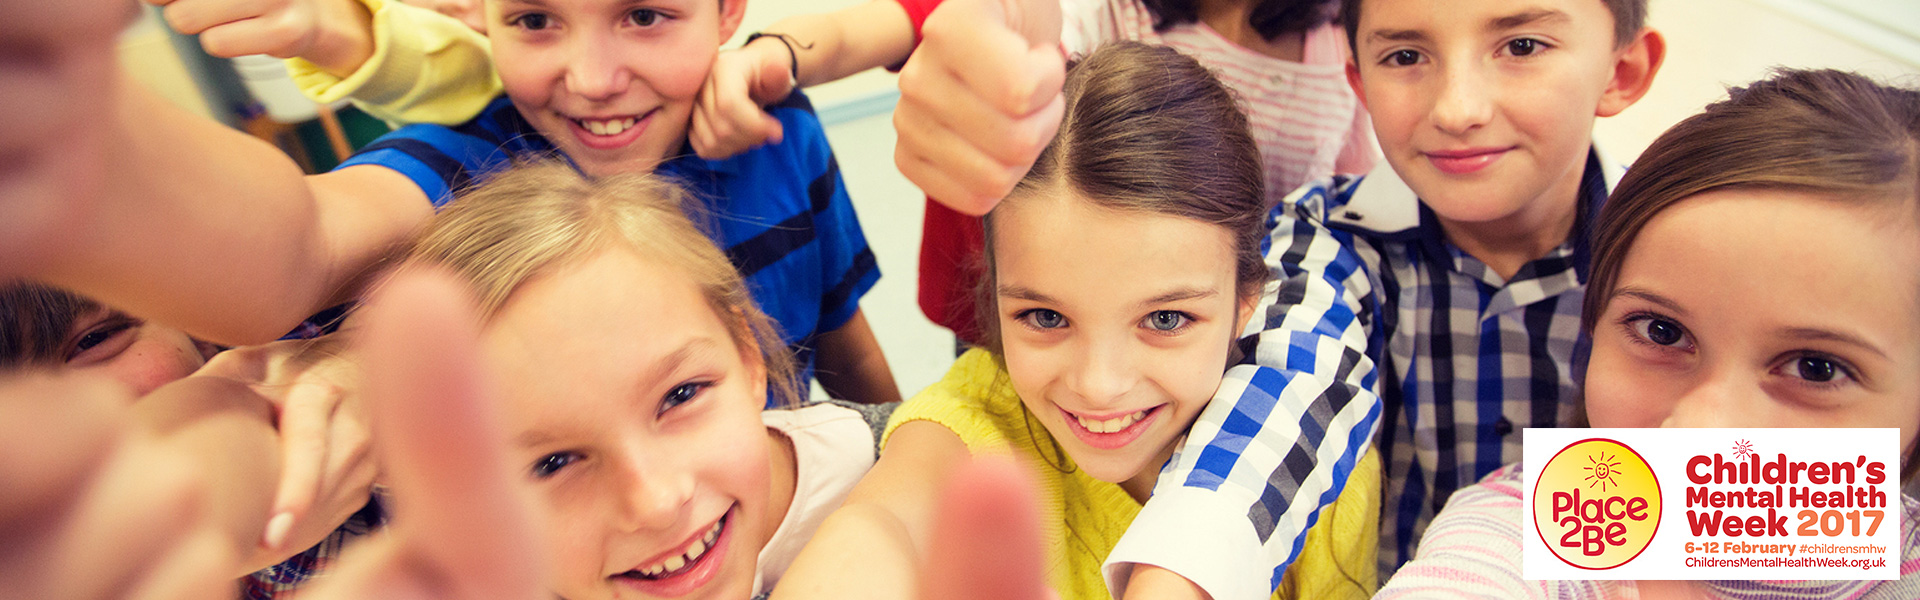 Teaching Kindness to Improve Children's Mental Health and Wellbeing